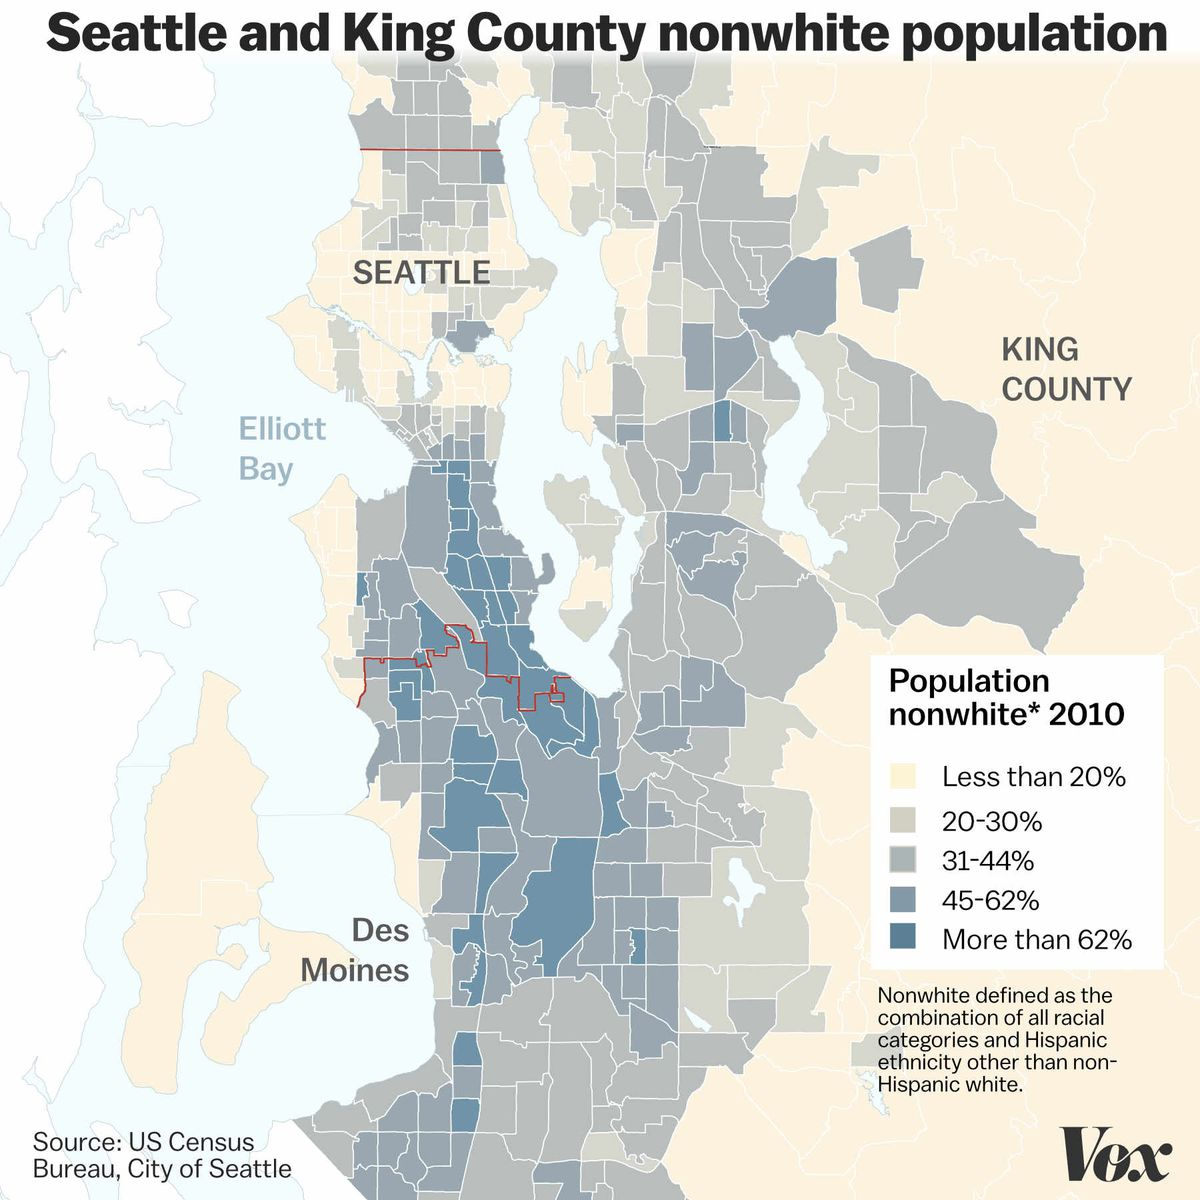 Seattle and King County nonwhite population